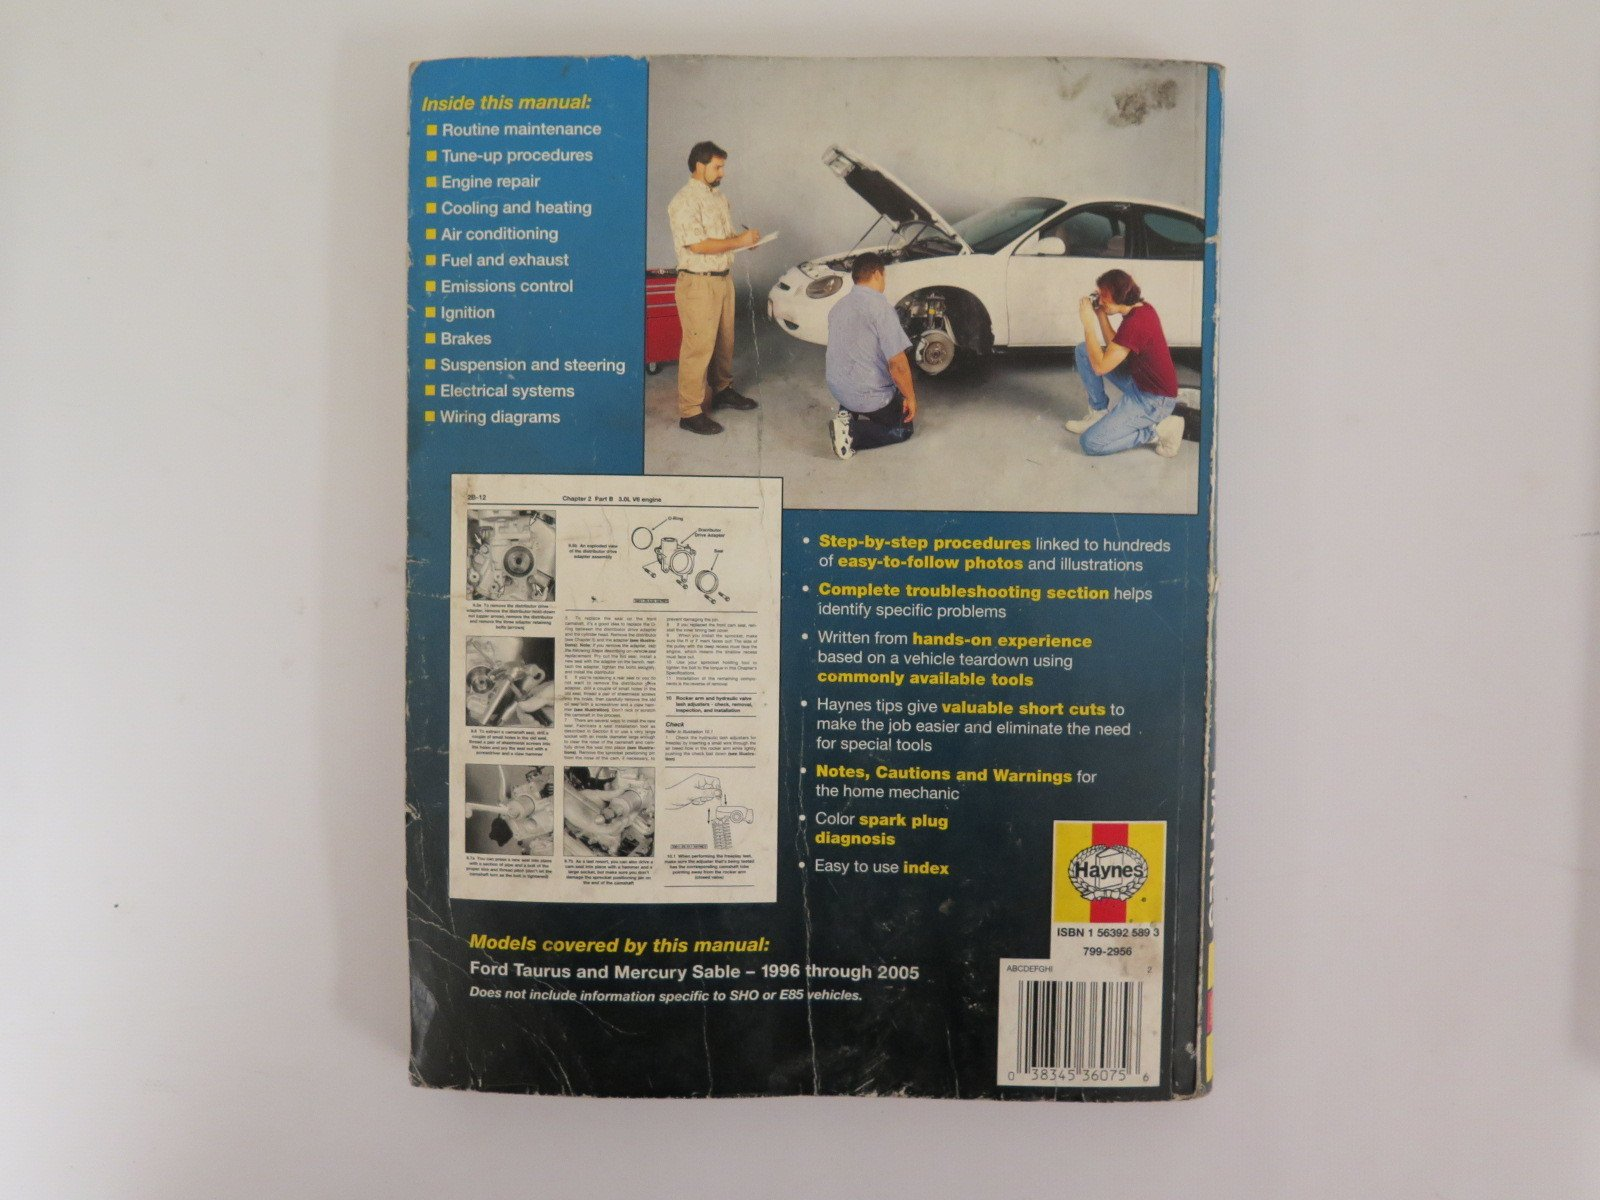 By Layne, Ken Ford Taurus & Mercury Sable 1996 thru 2005 (Hayne's  Automotive Repair Manual) (2006) Paperback: 7897186061719: Amazon.com: Books